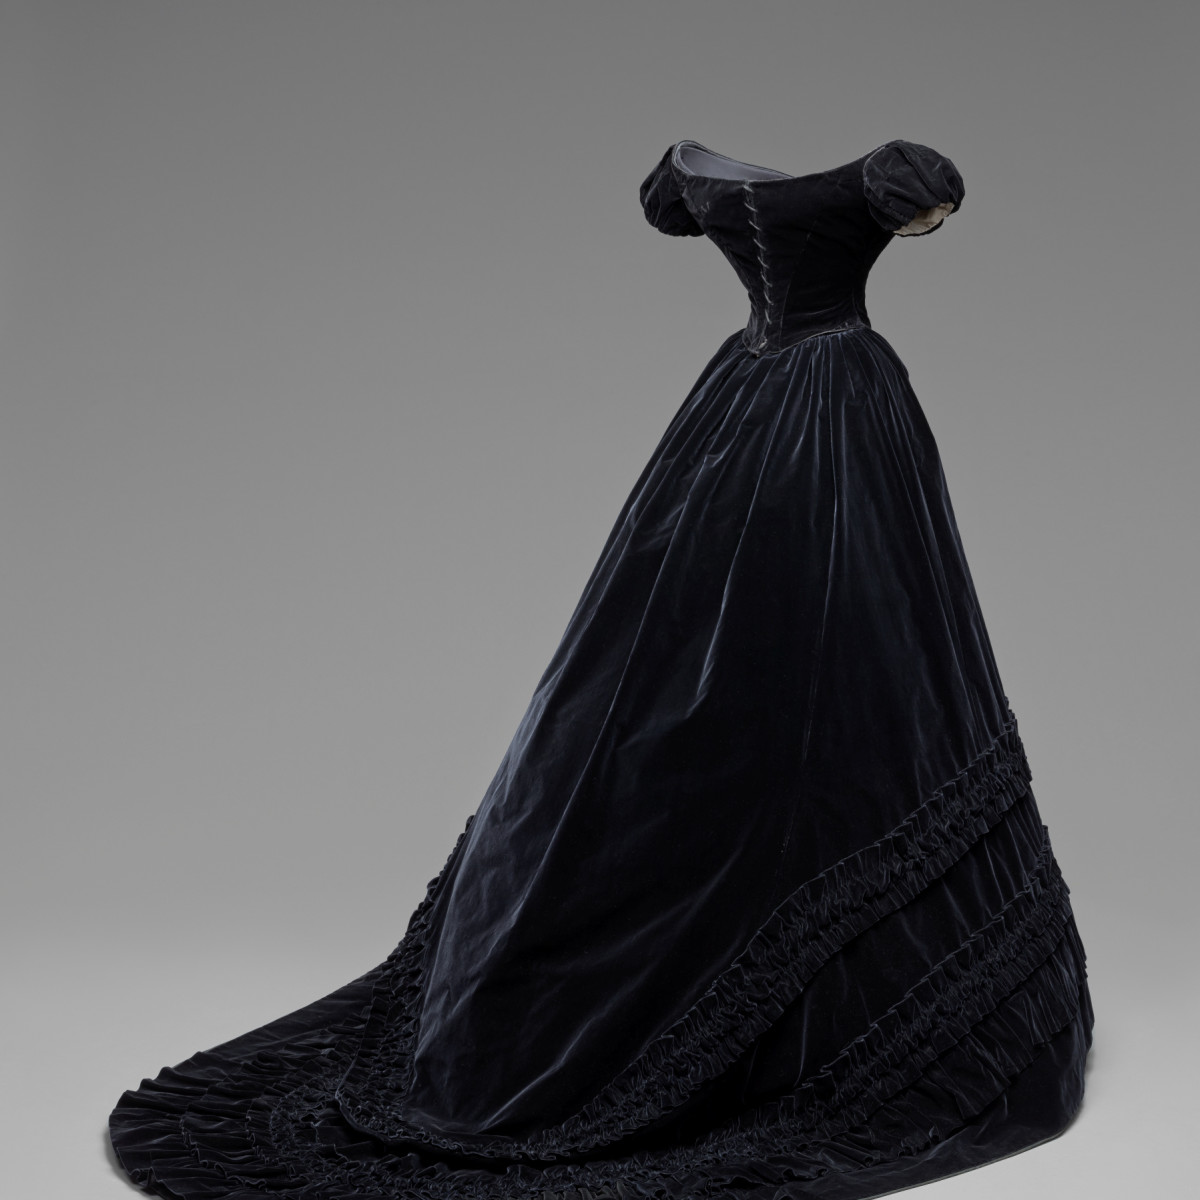 Habsburg Splendor Black Velvet Dress